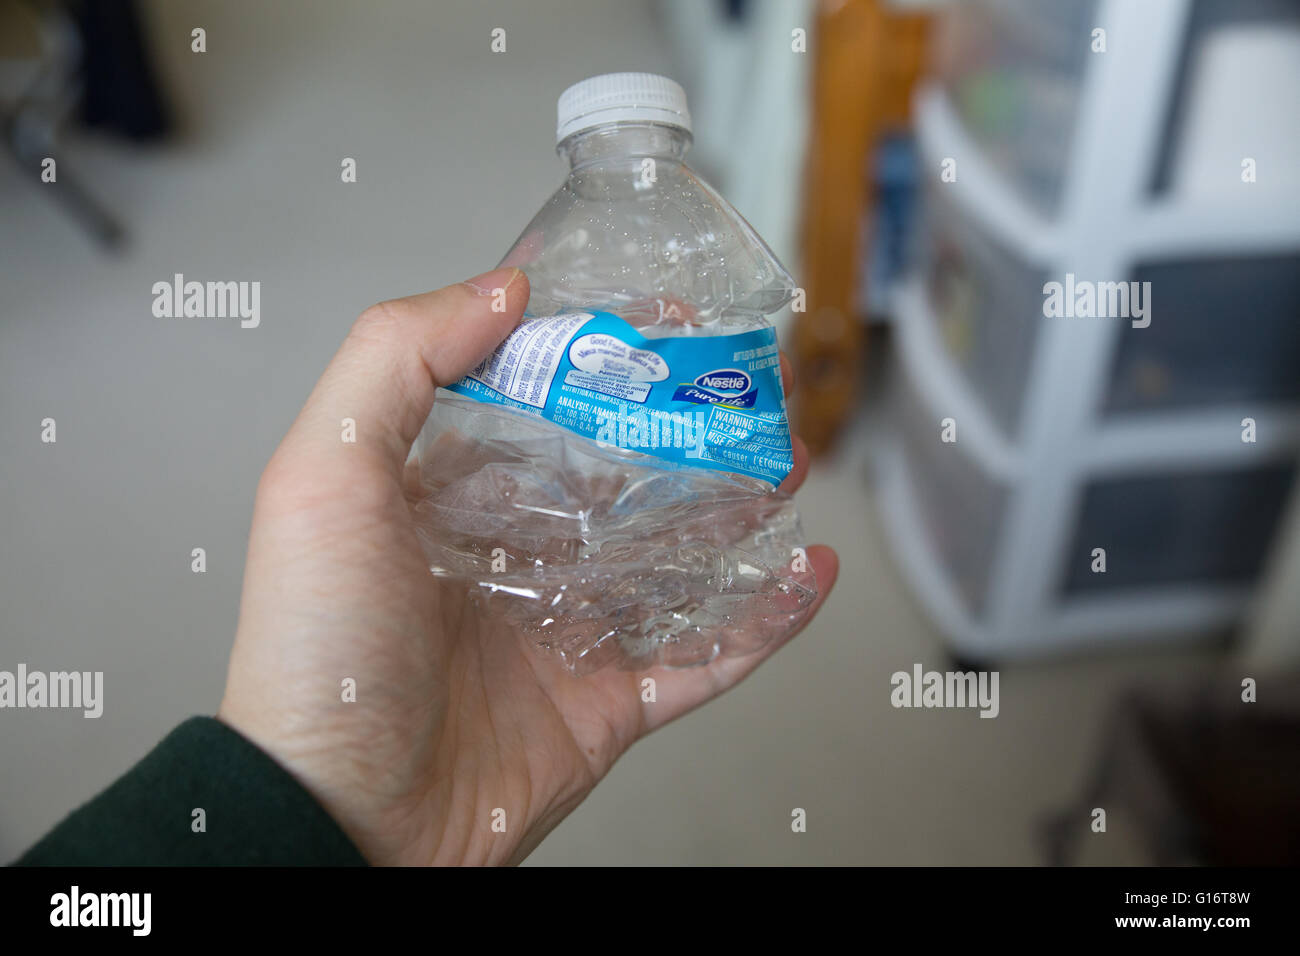 Crumpled Plastic Bottle squeezed water bottle - Stock Image